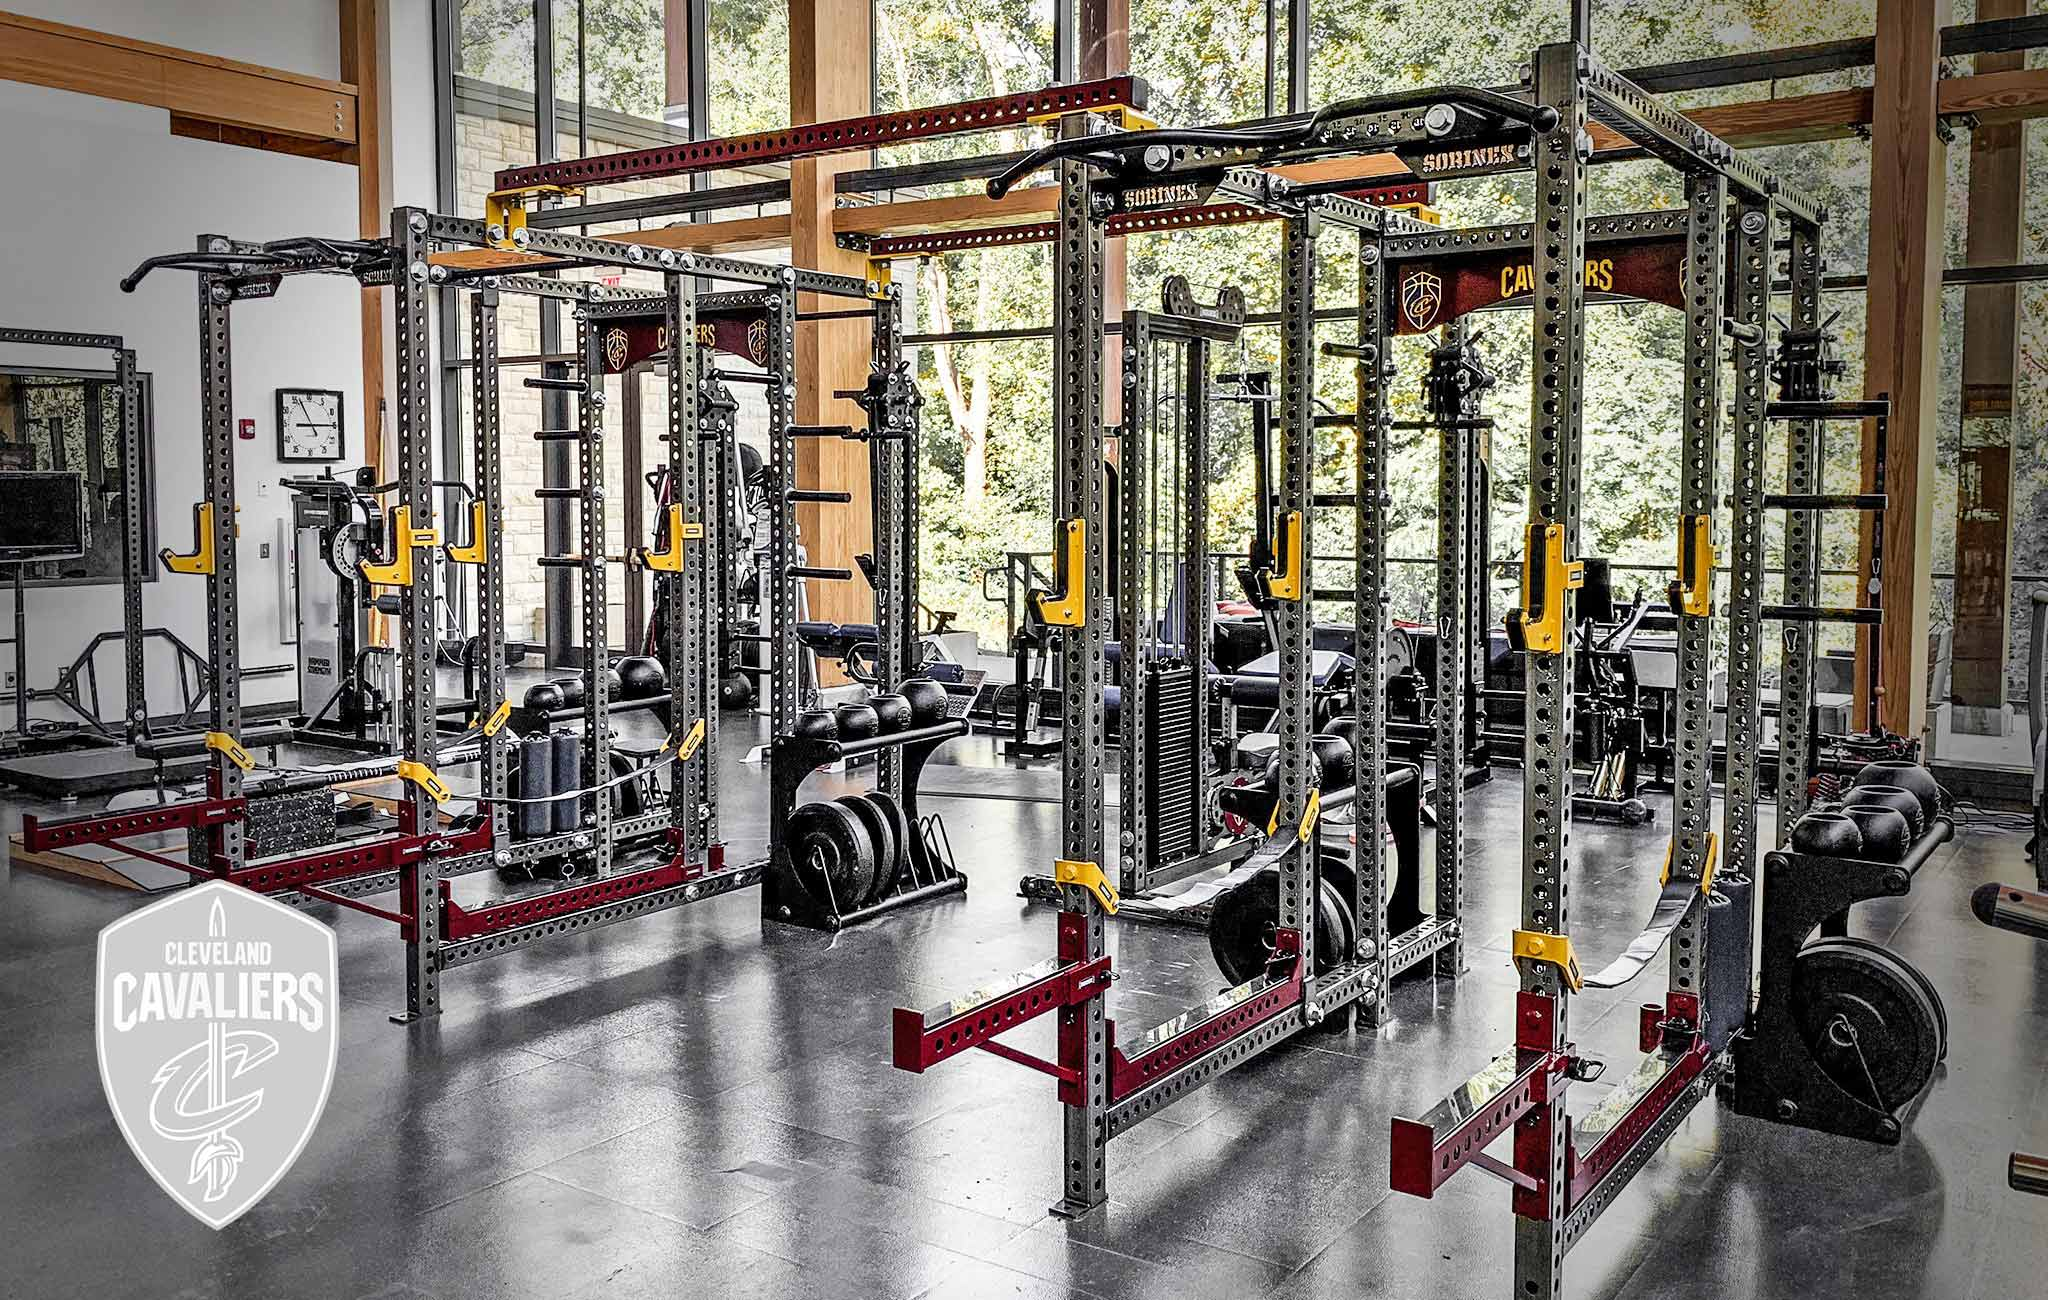 Cleveland Cavaliers Sorinex strength and conditioning facility